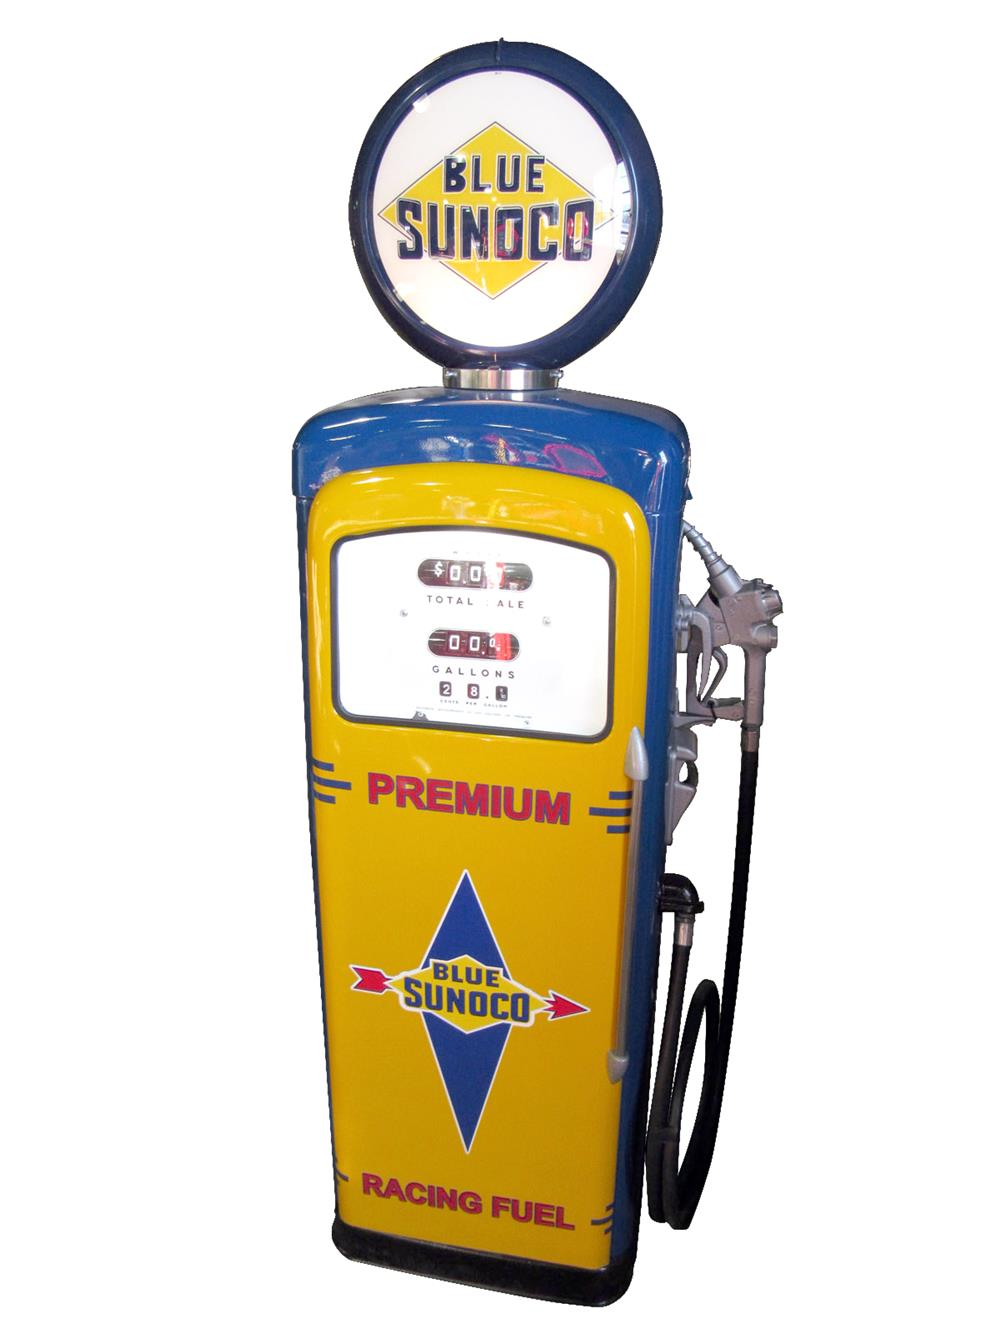 late 1950s sunoco oil wayne 90 restored service station gas p